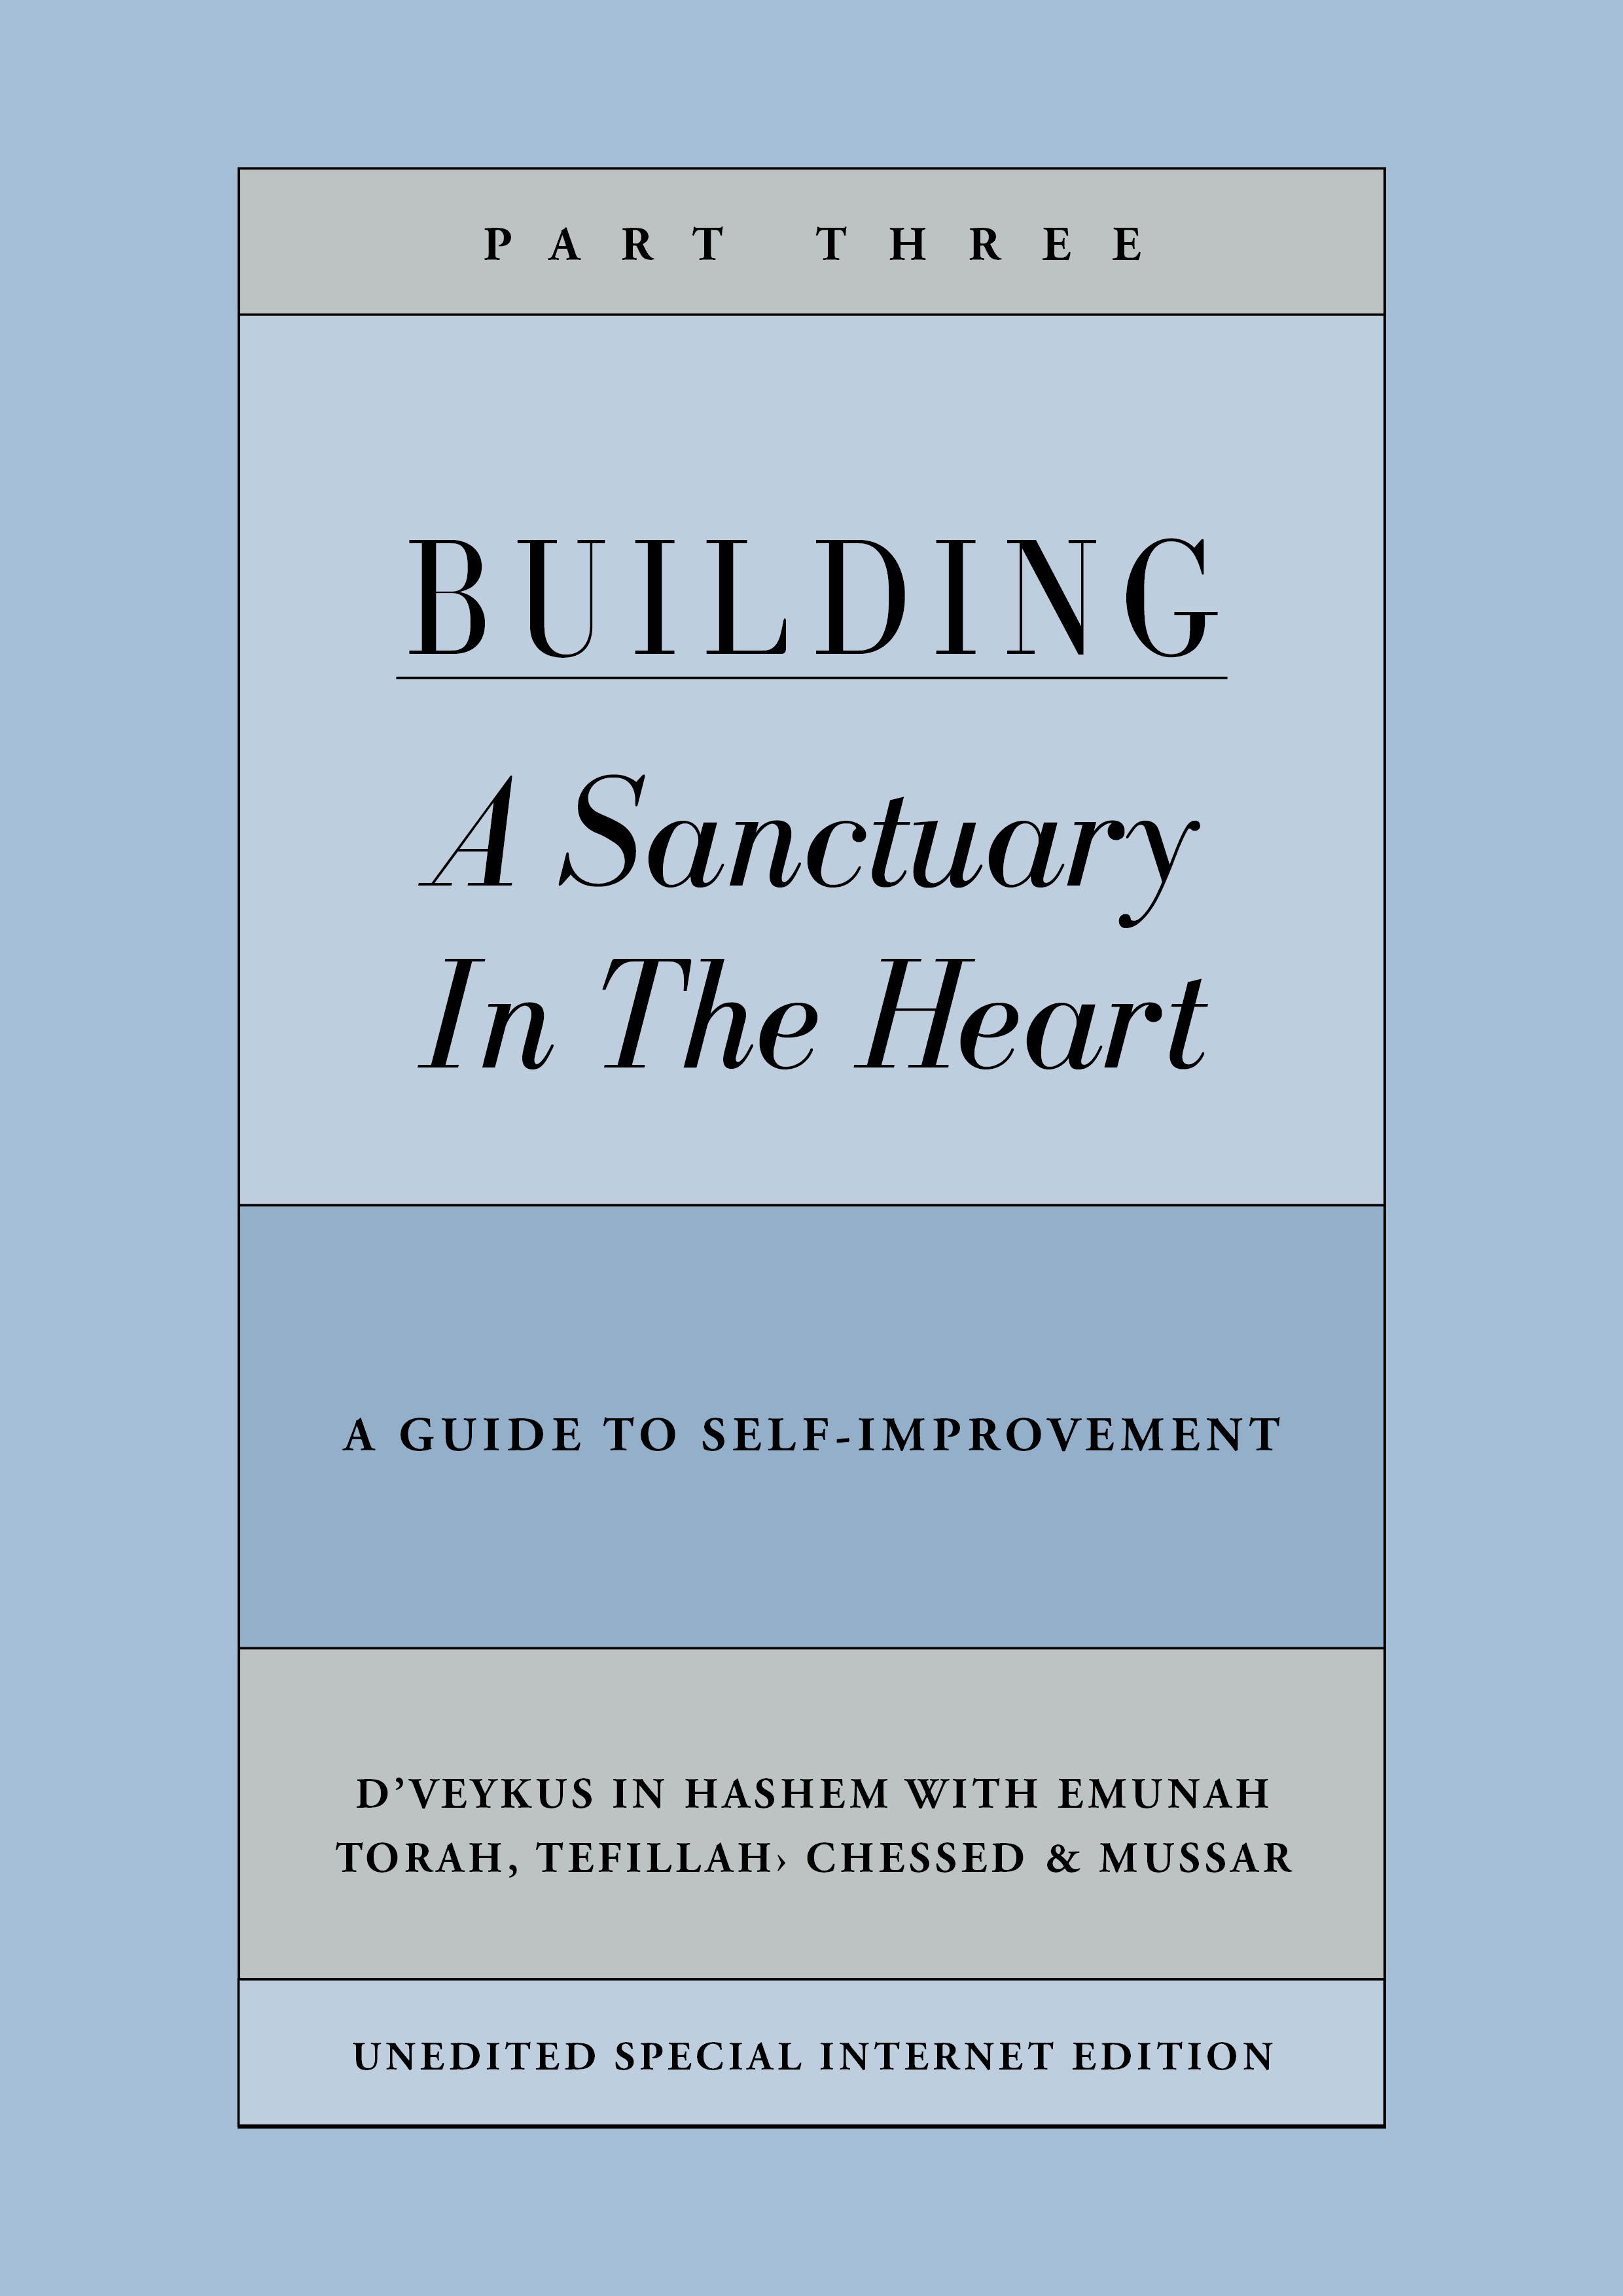 Building a Sanctuary in the Heart | Part Three